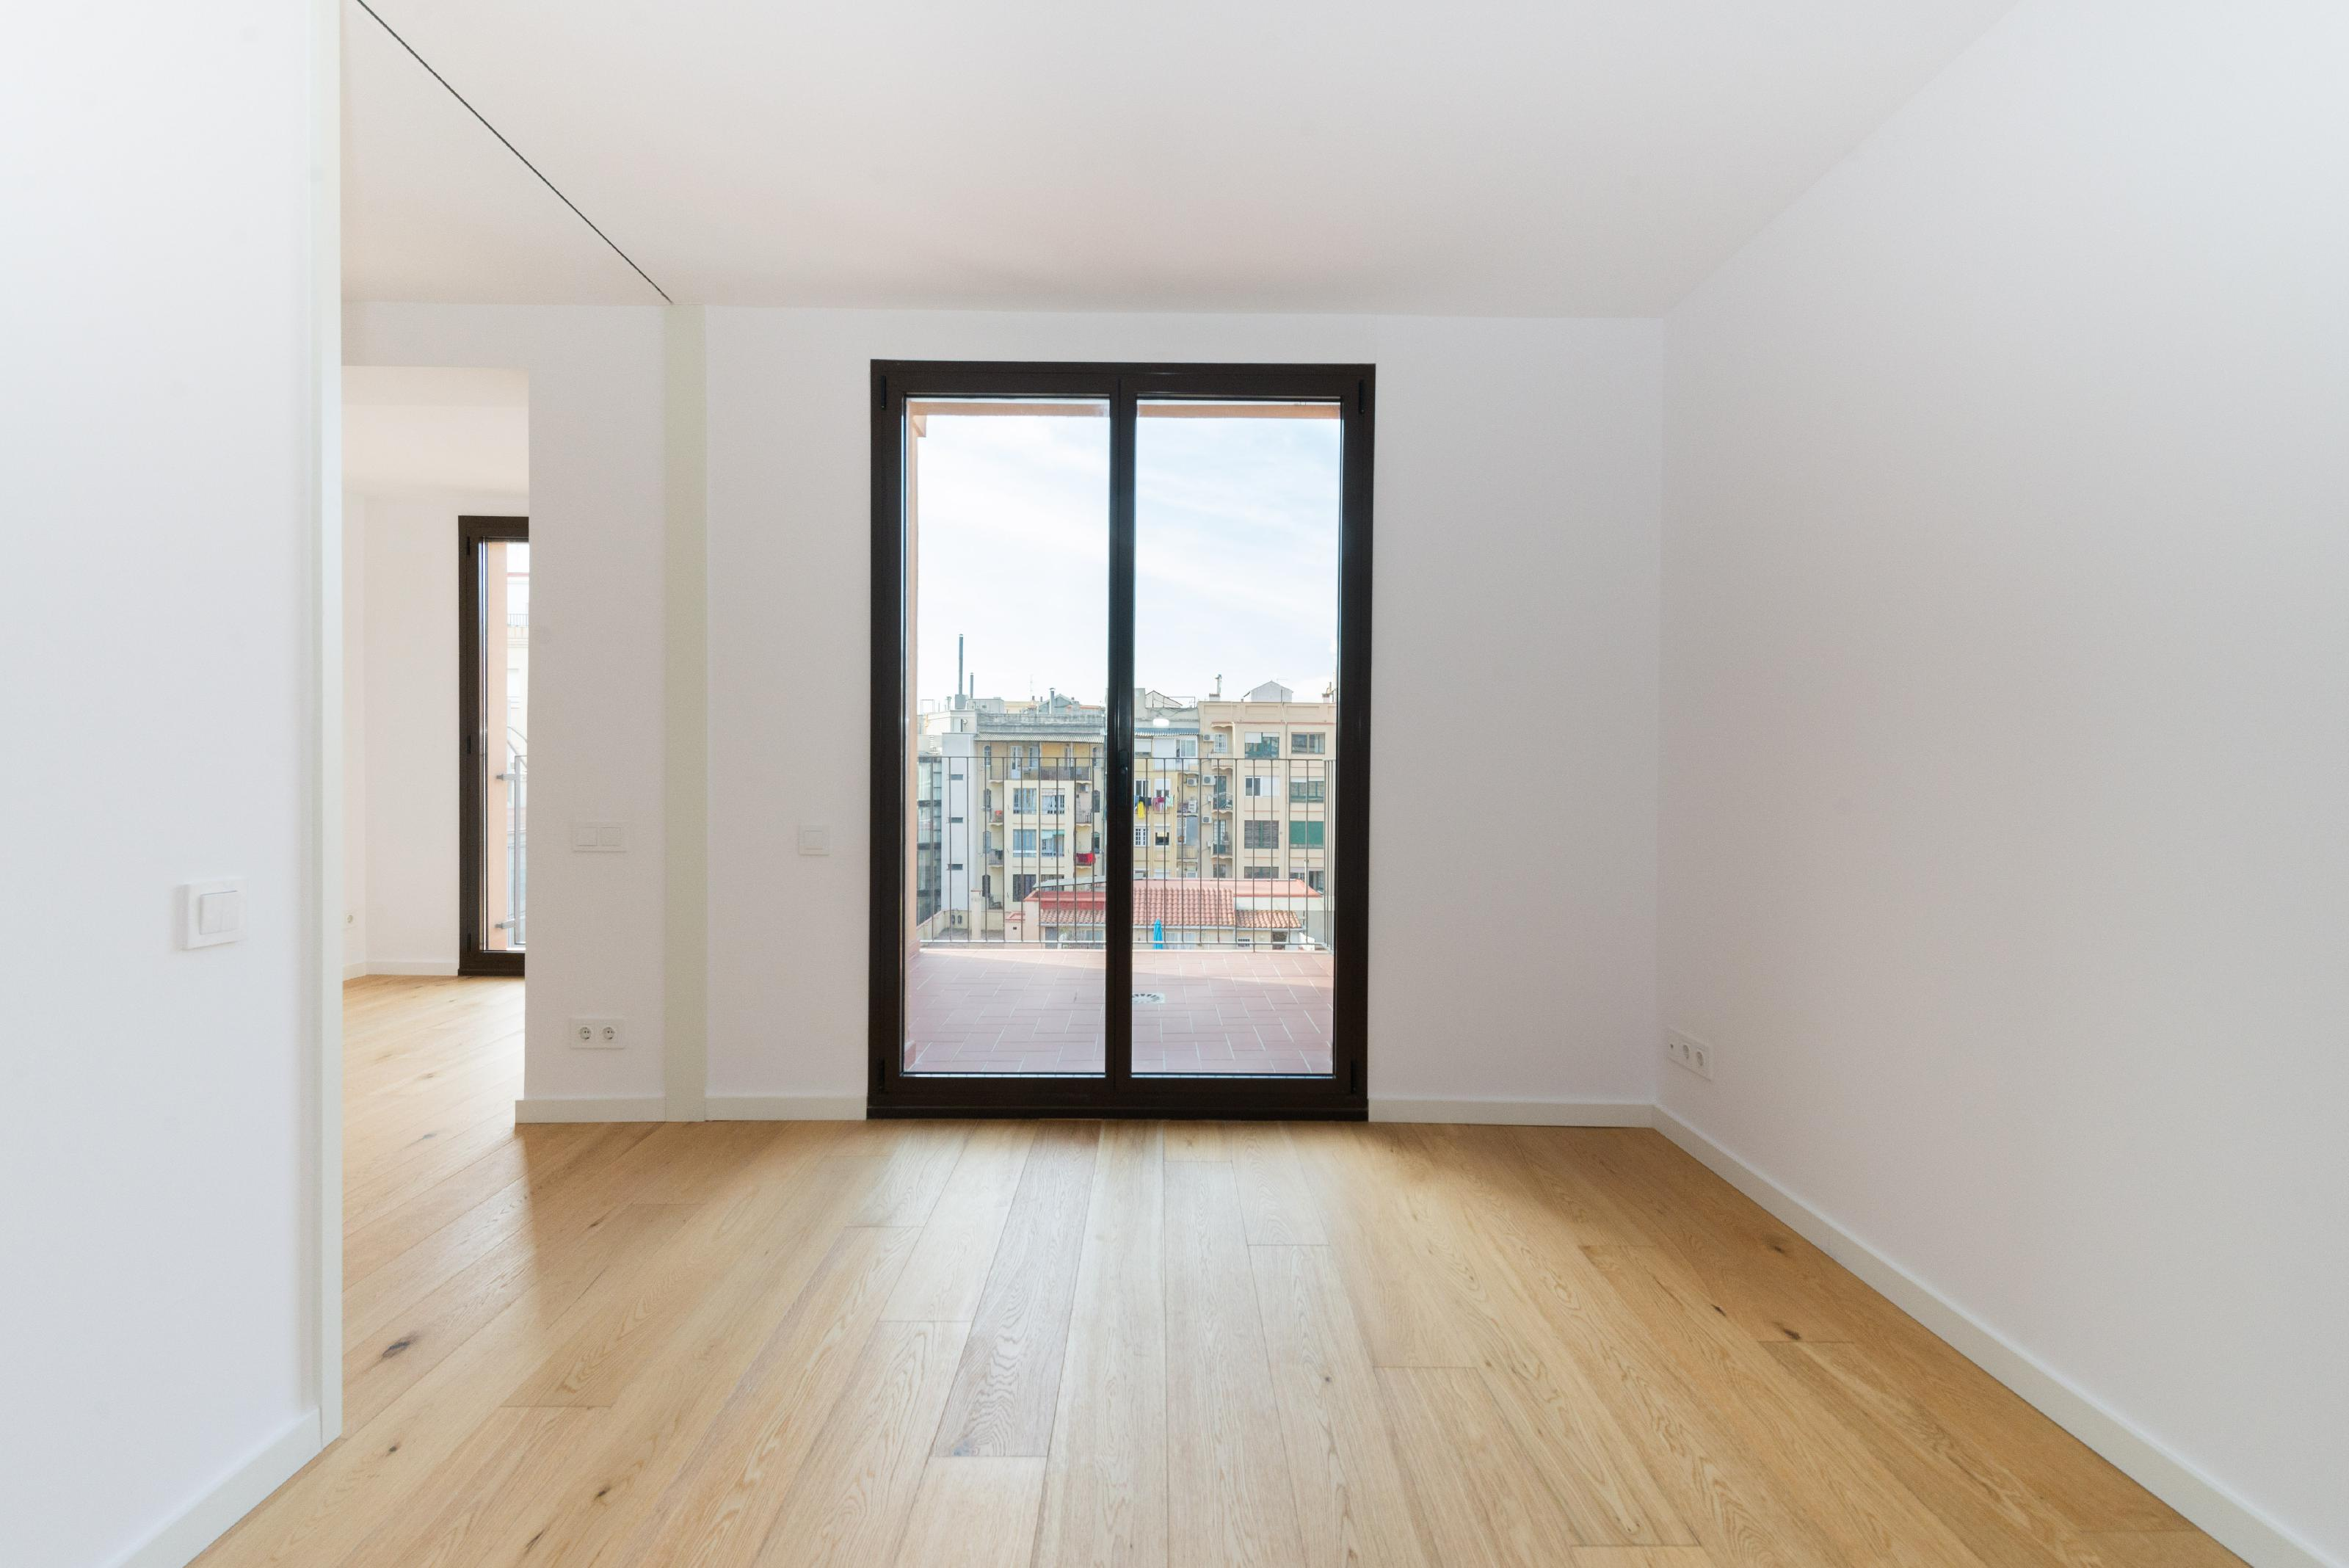 216125 Apartment for sale in Eixample, Old Left Eixample 10